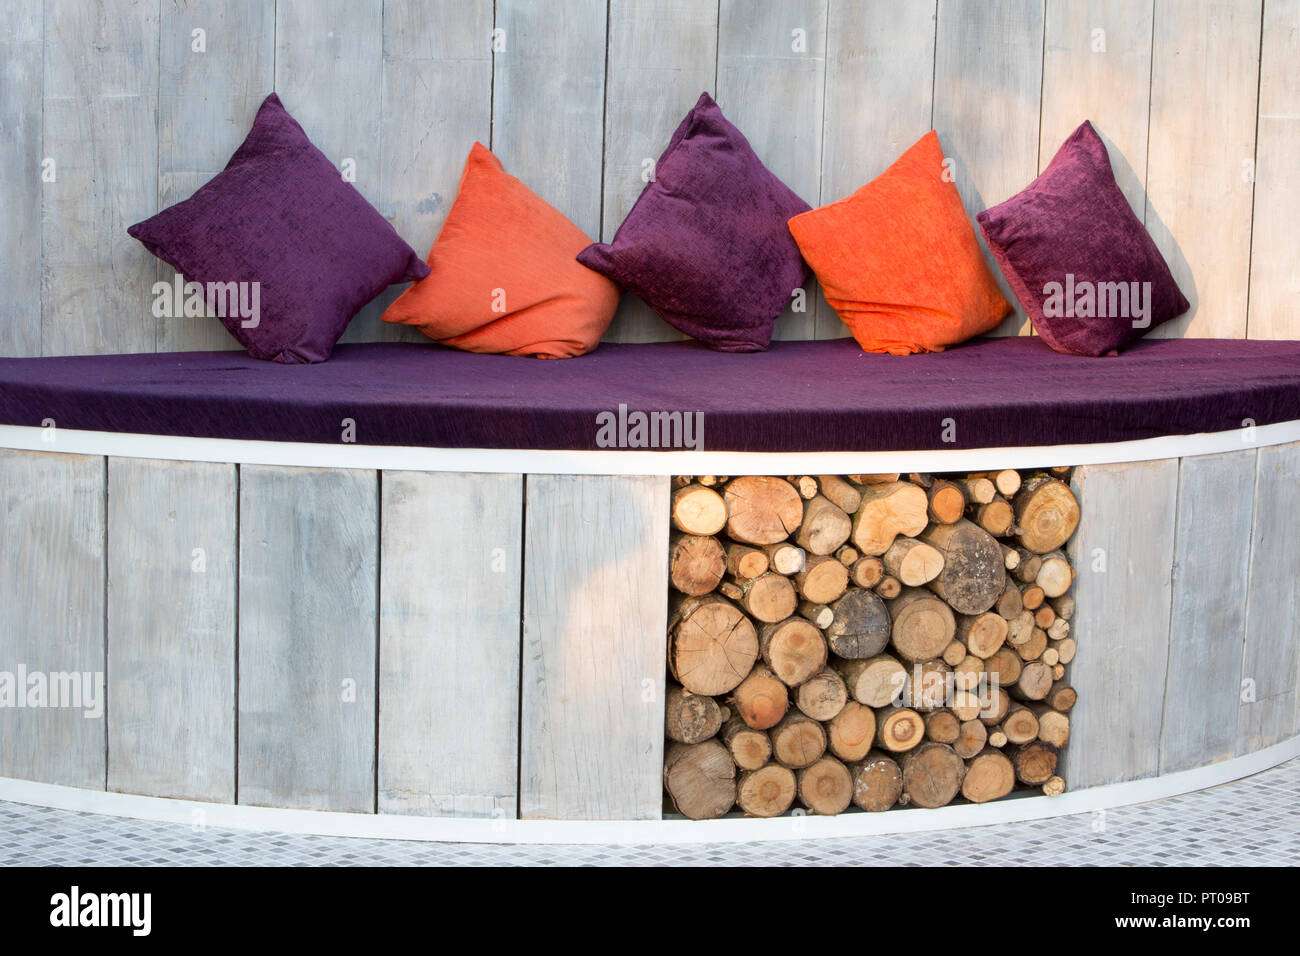 Wondrous Outdoor Seating Area With Cushions And Log Storage Ceramic Camellatalisay Diy Chair Ideas Camellatalisaycom